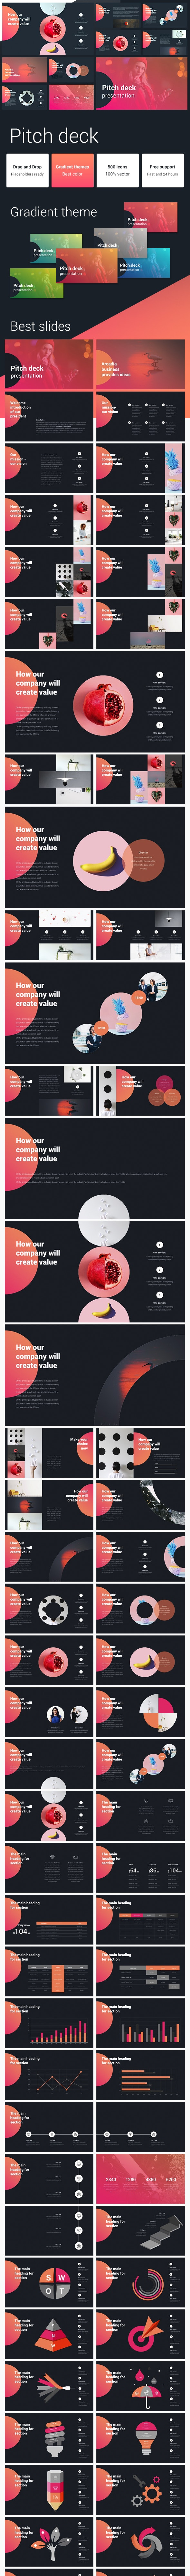 Pitch Deck Gradient Powerpoint Template - Pitch Deck PowerPoint Templates